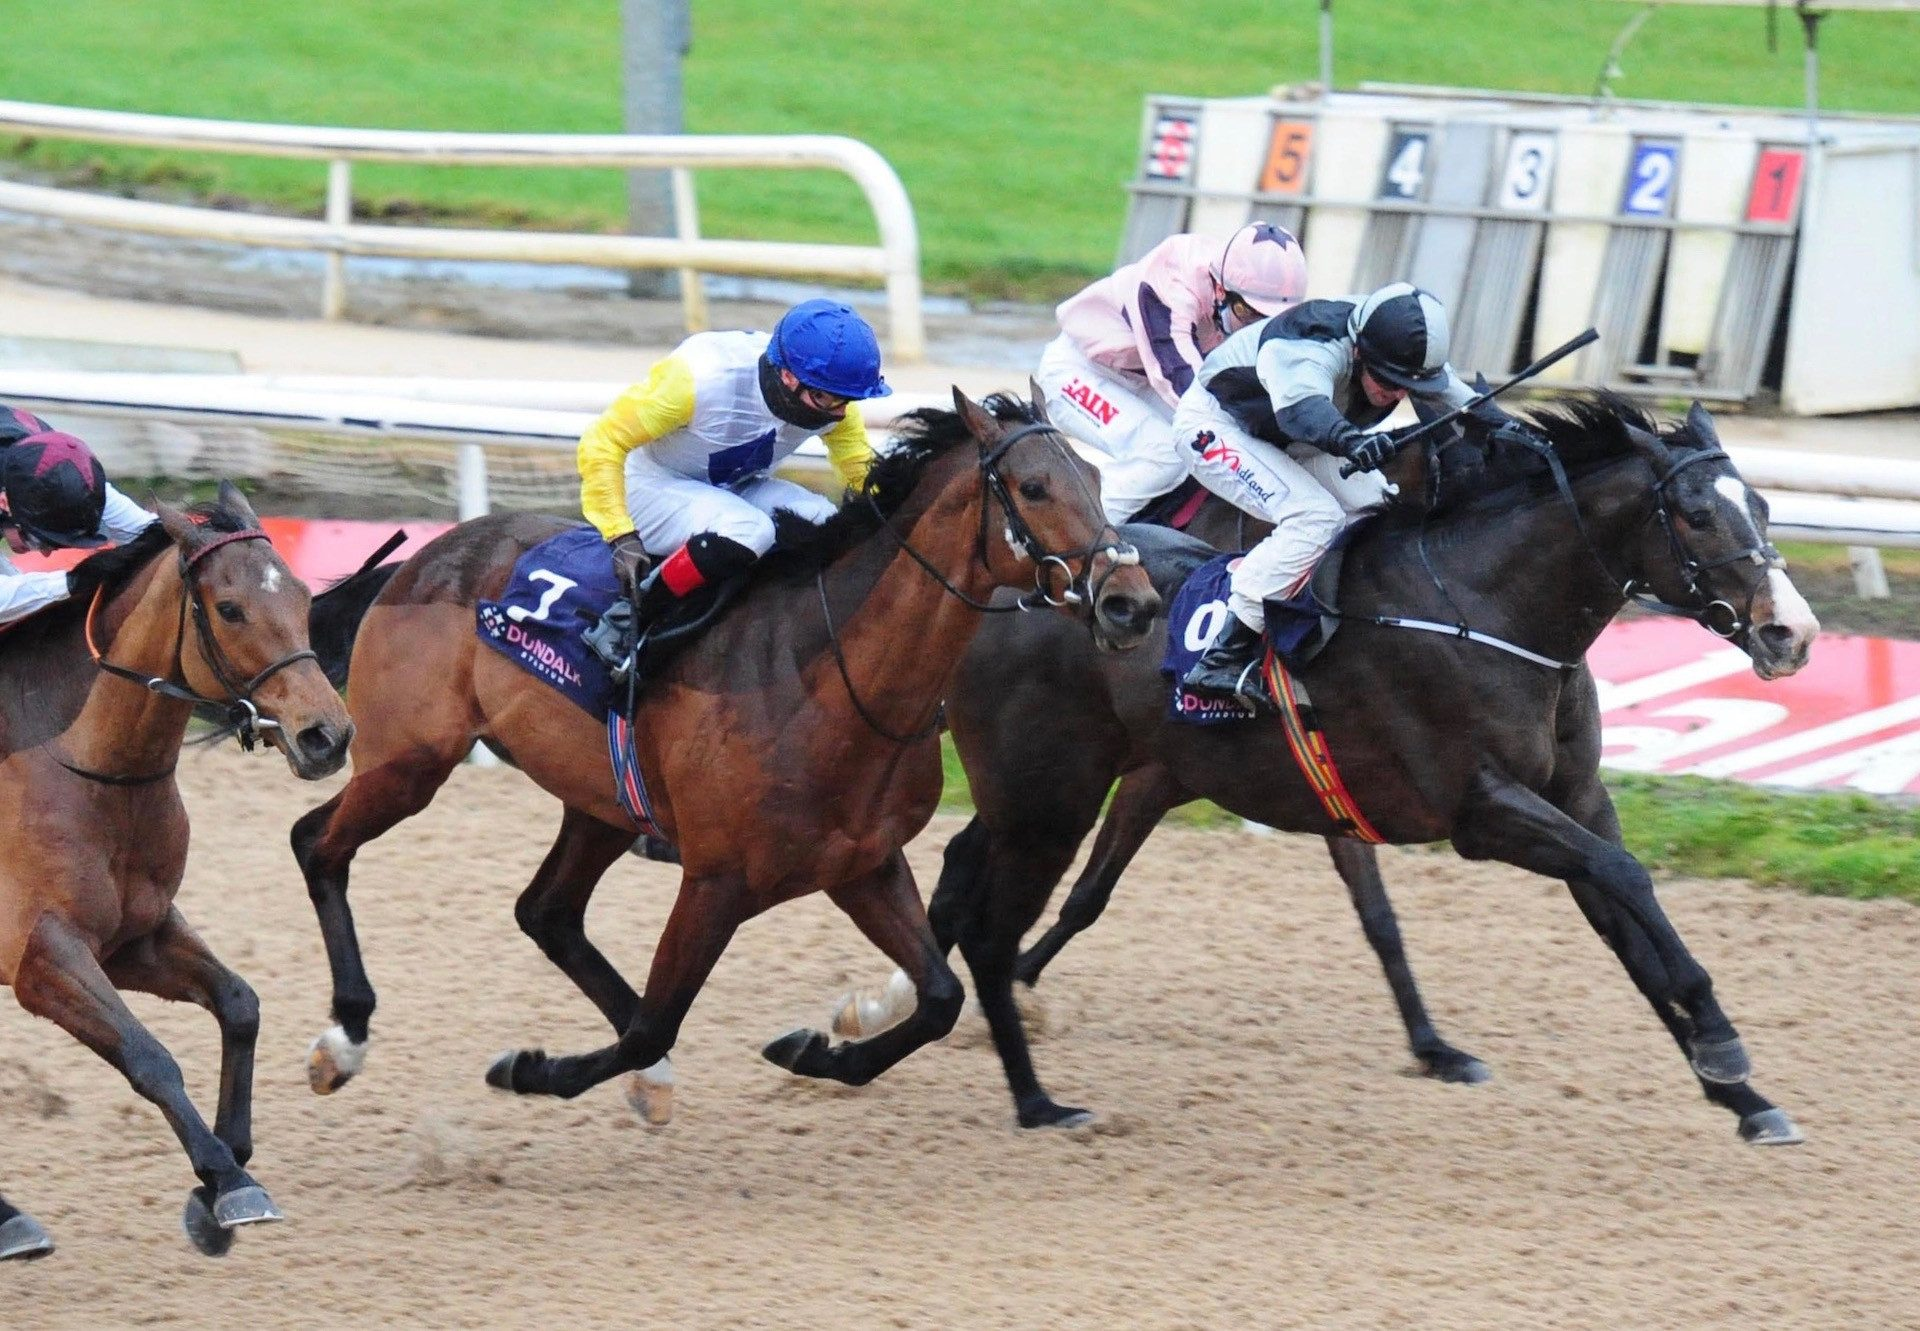 Pin Your Hopes Wins Her Maiden At Dundalk 1